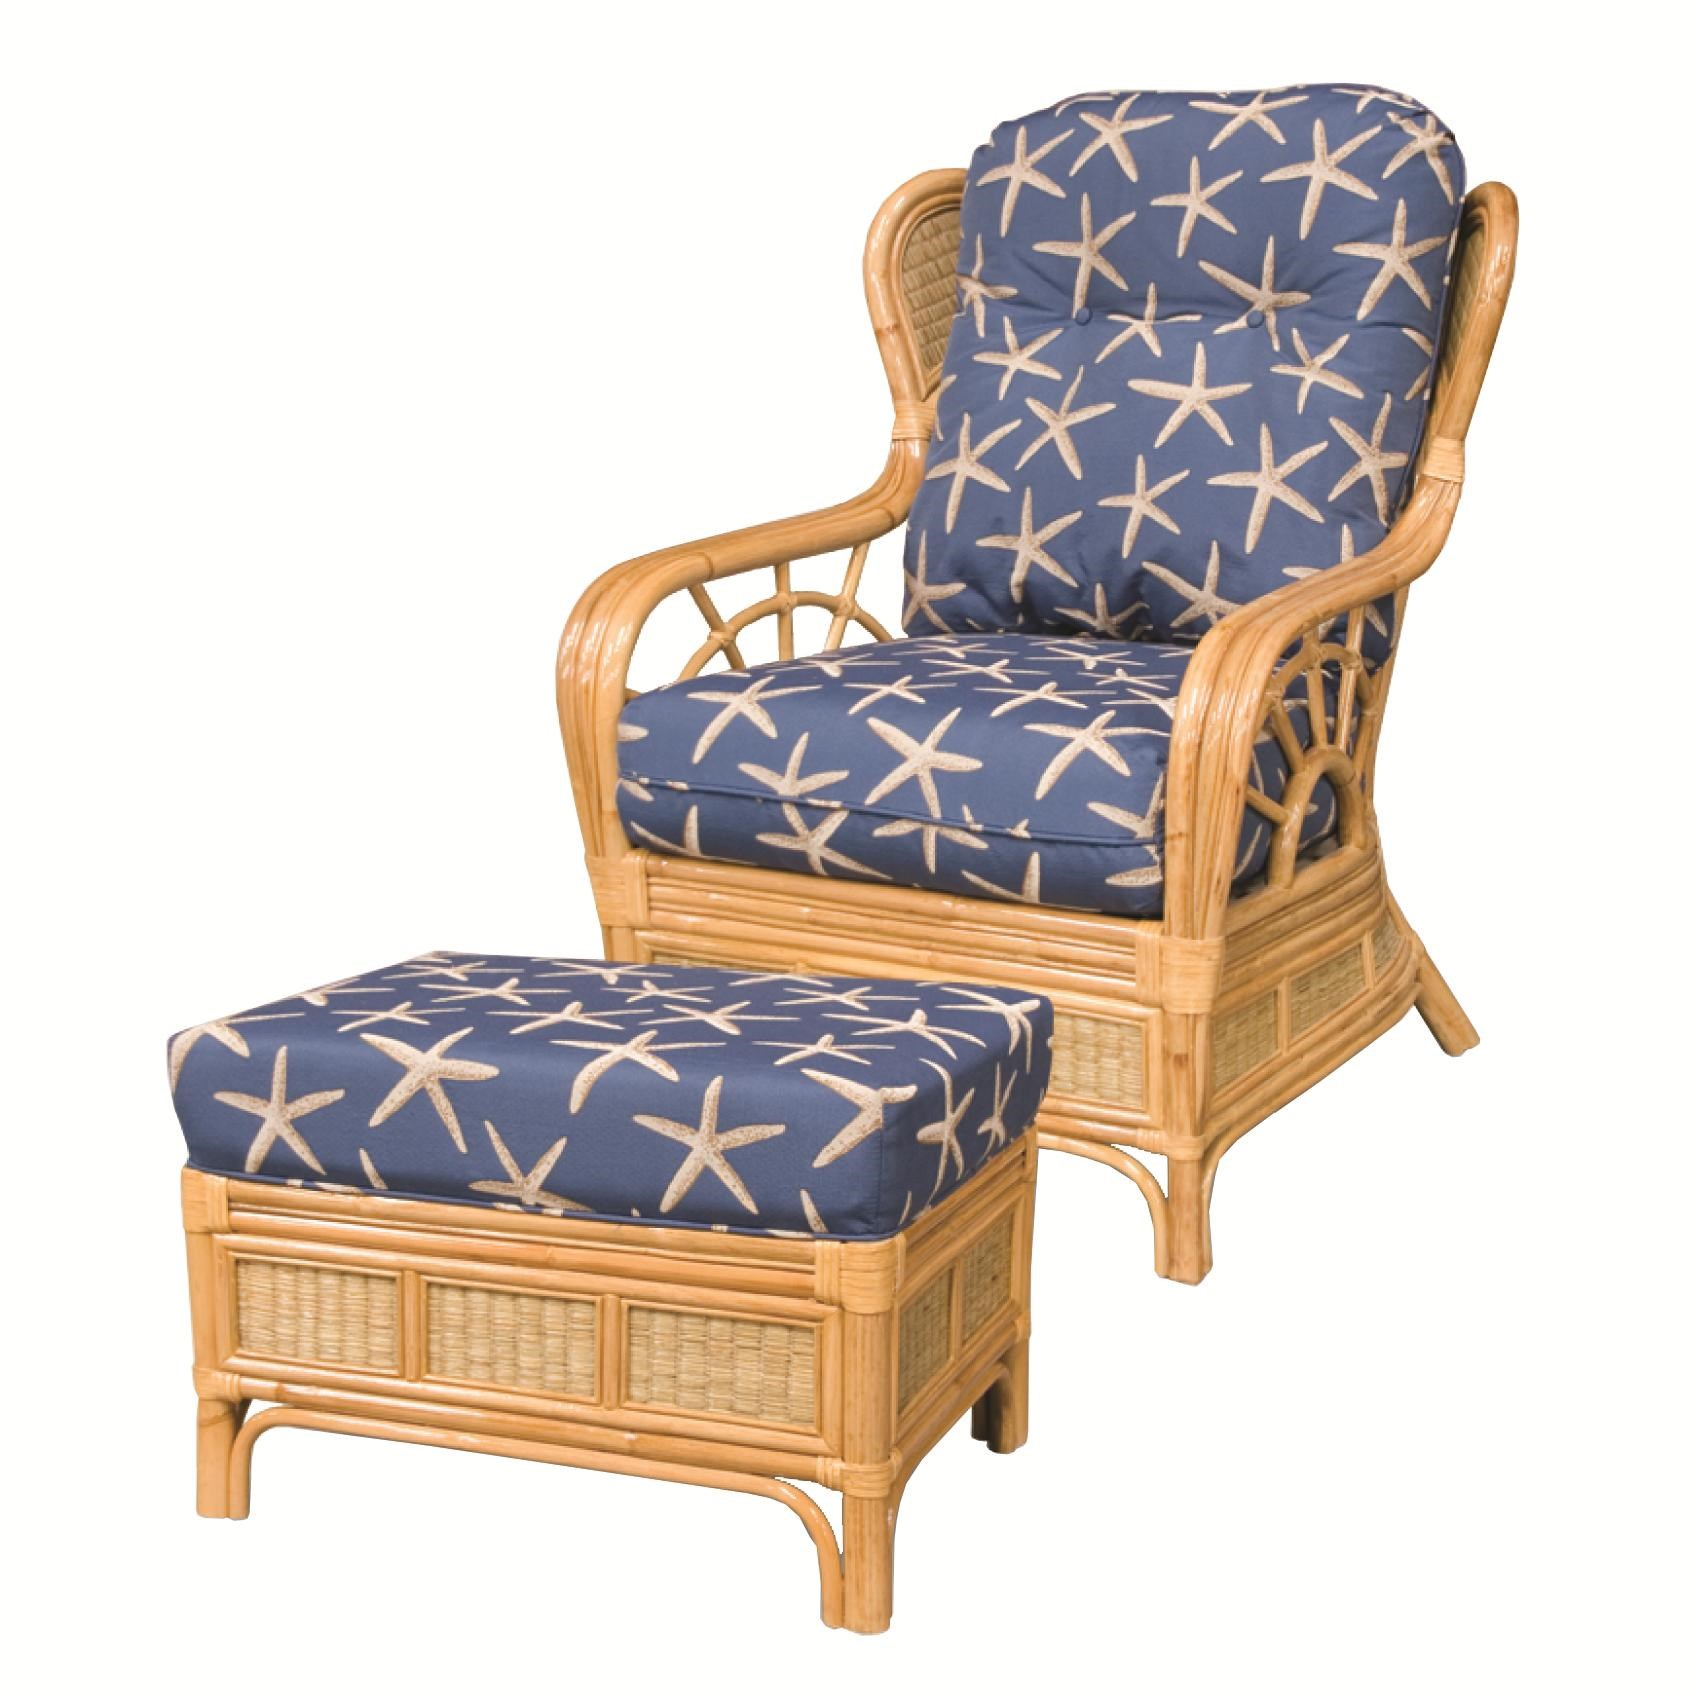 capris furniture 381 collection wicker rattan framed upholstered chair and ottoman furniture chair u0026 ottoman